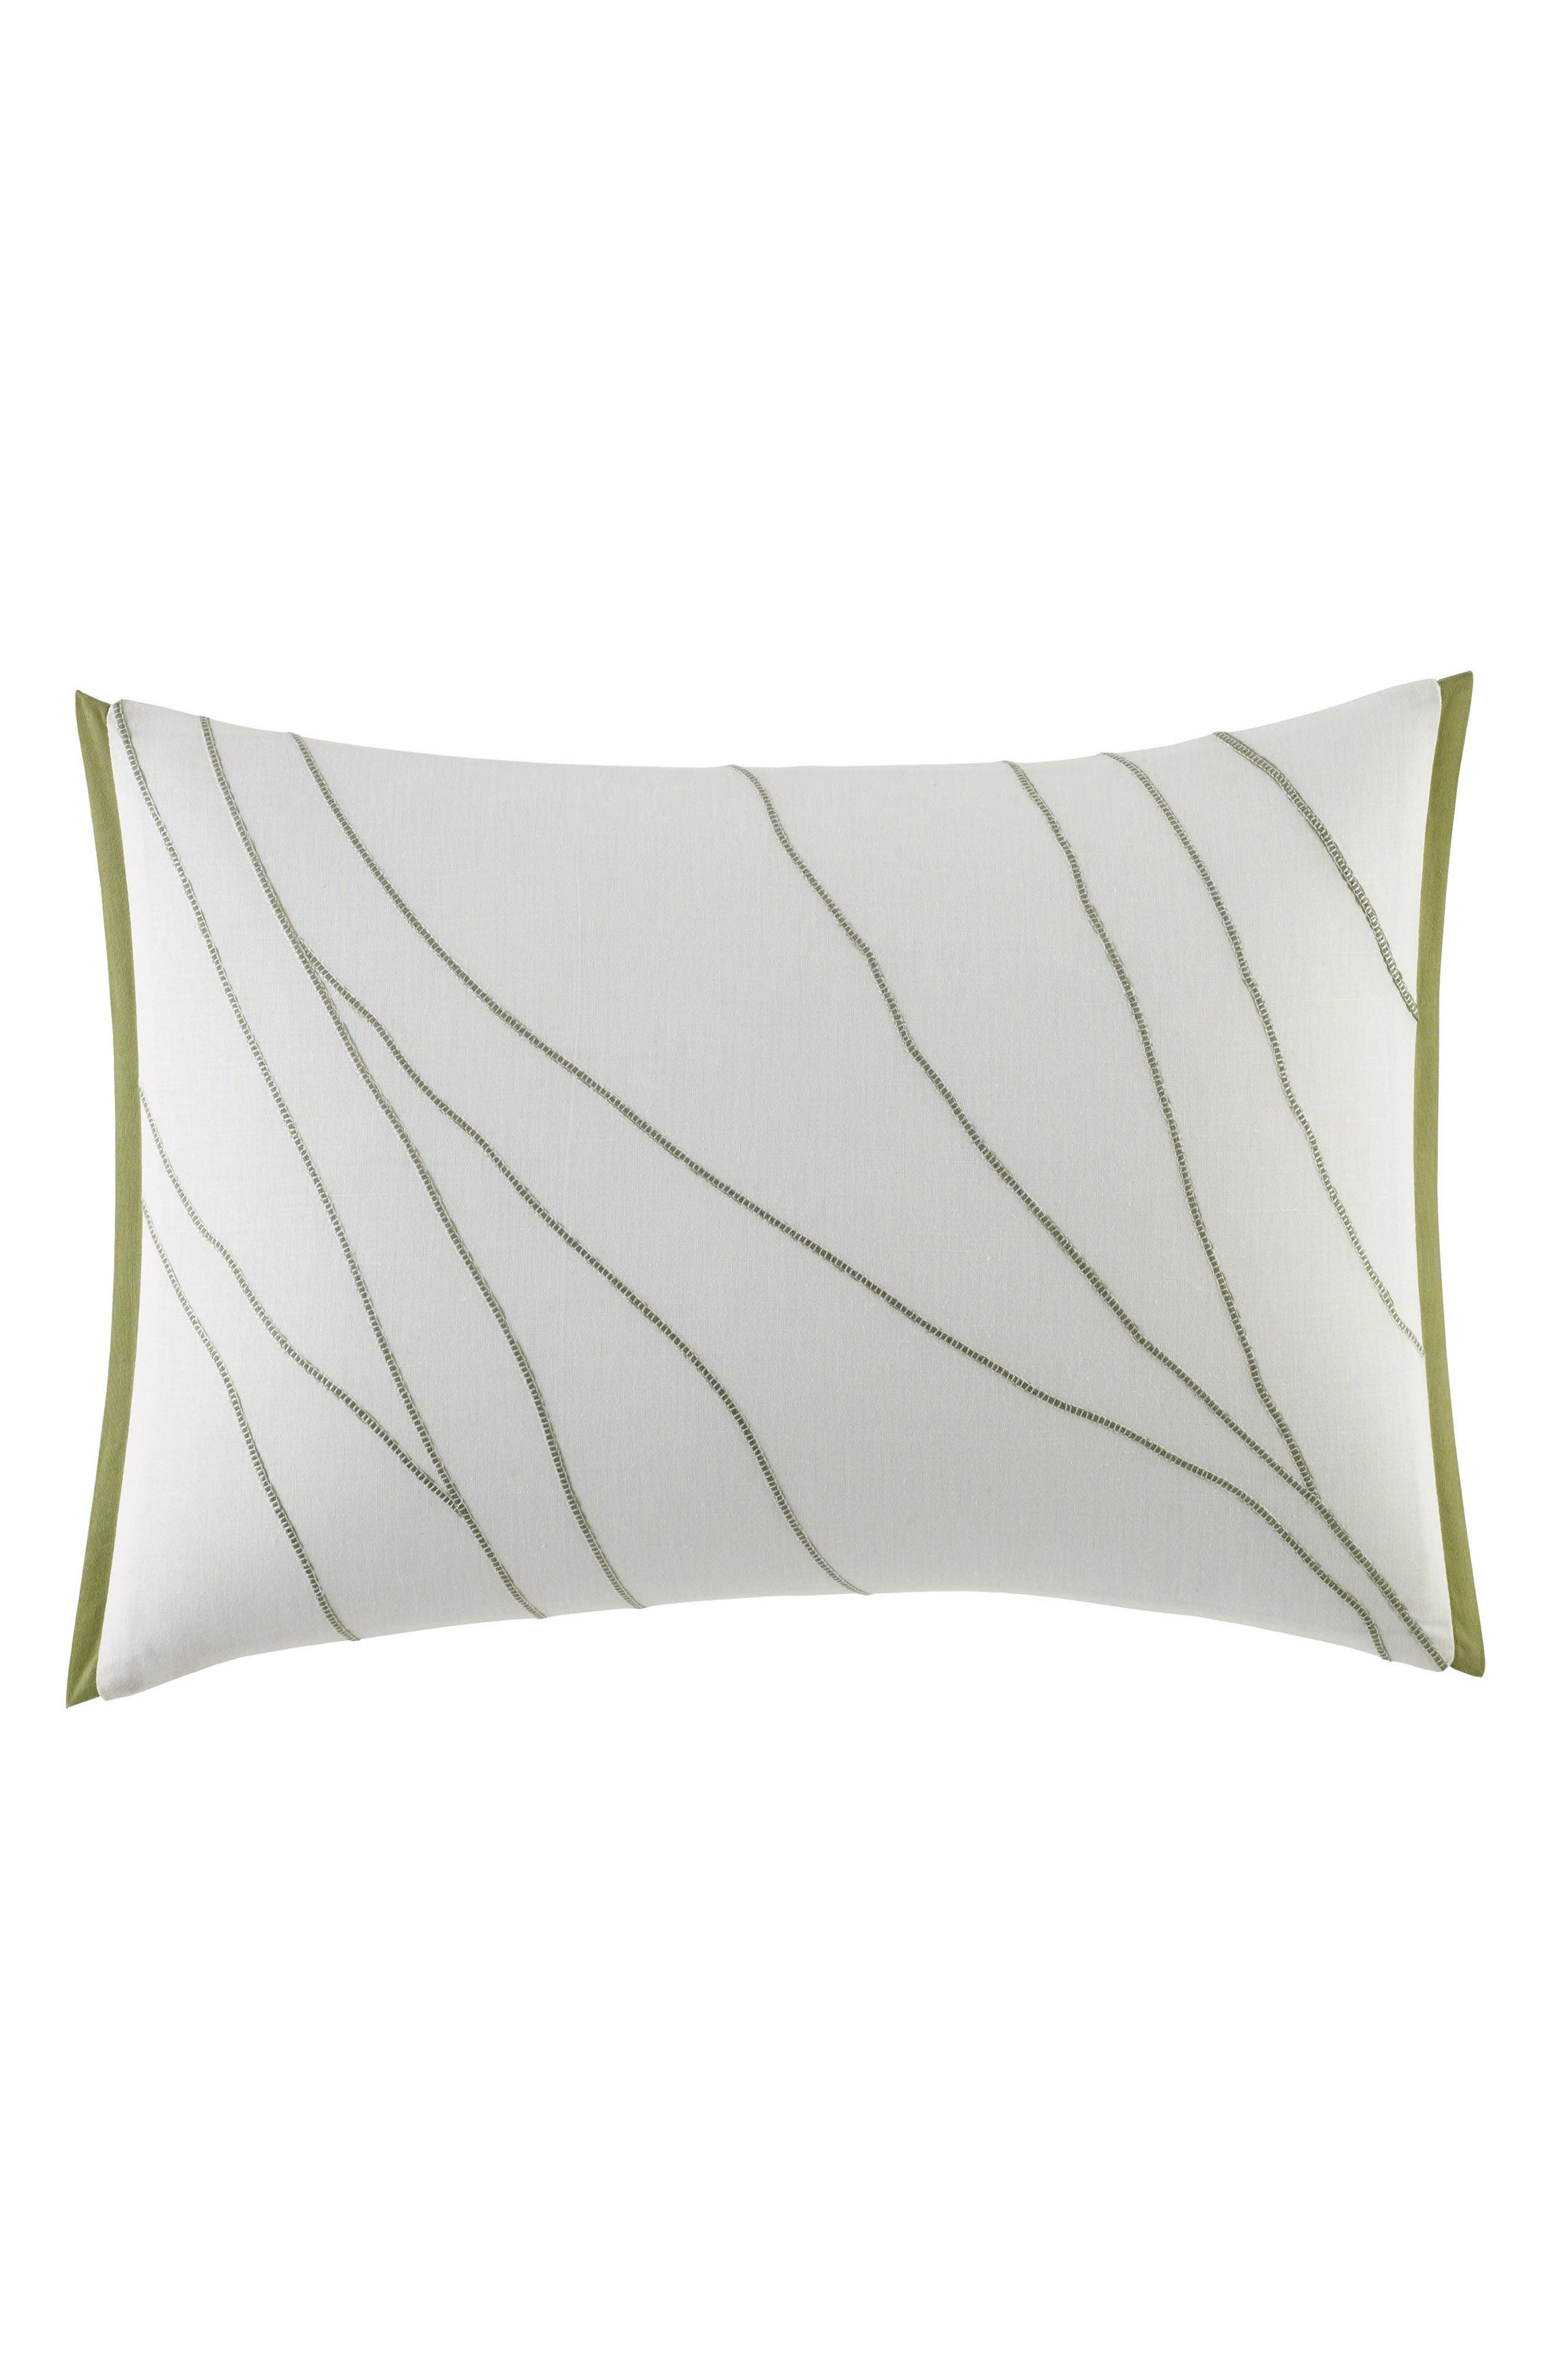 Main Image - Vera Wang Dragonfly Accent Pillow